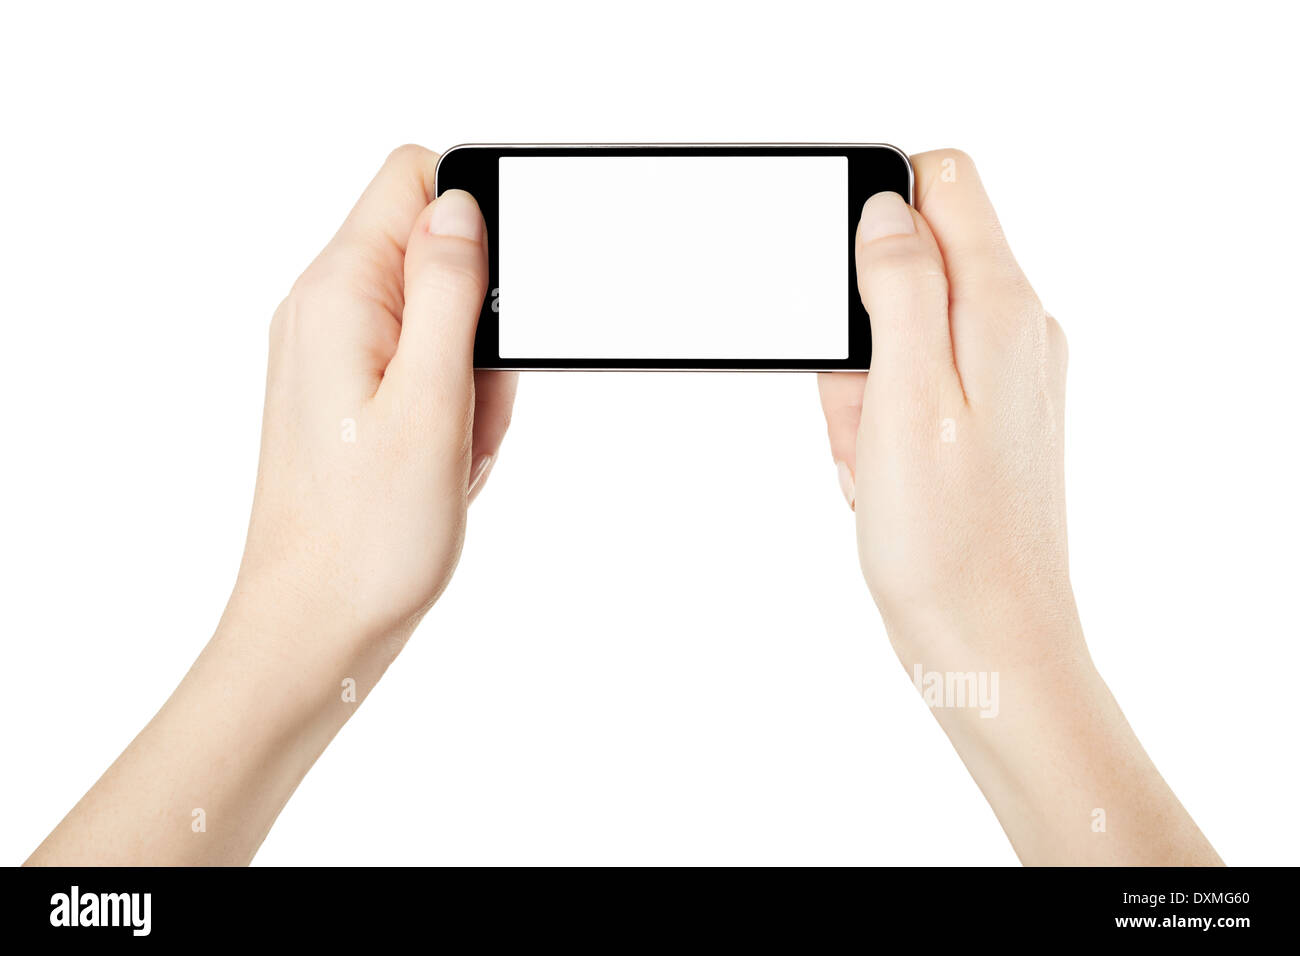 Hands holding smartphone device in horizontal, gaming - Stock Image